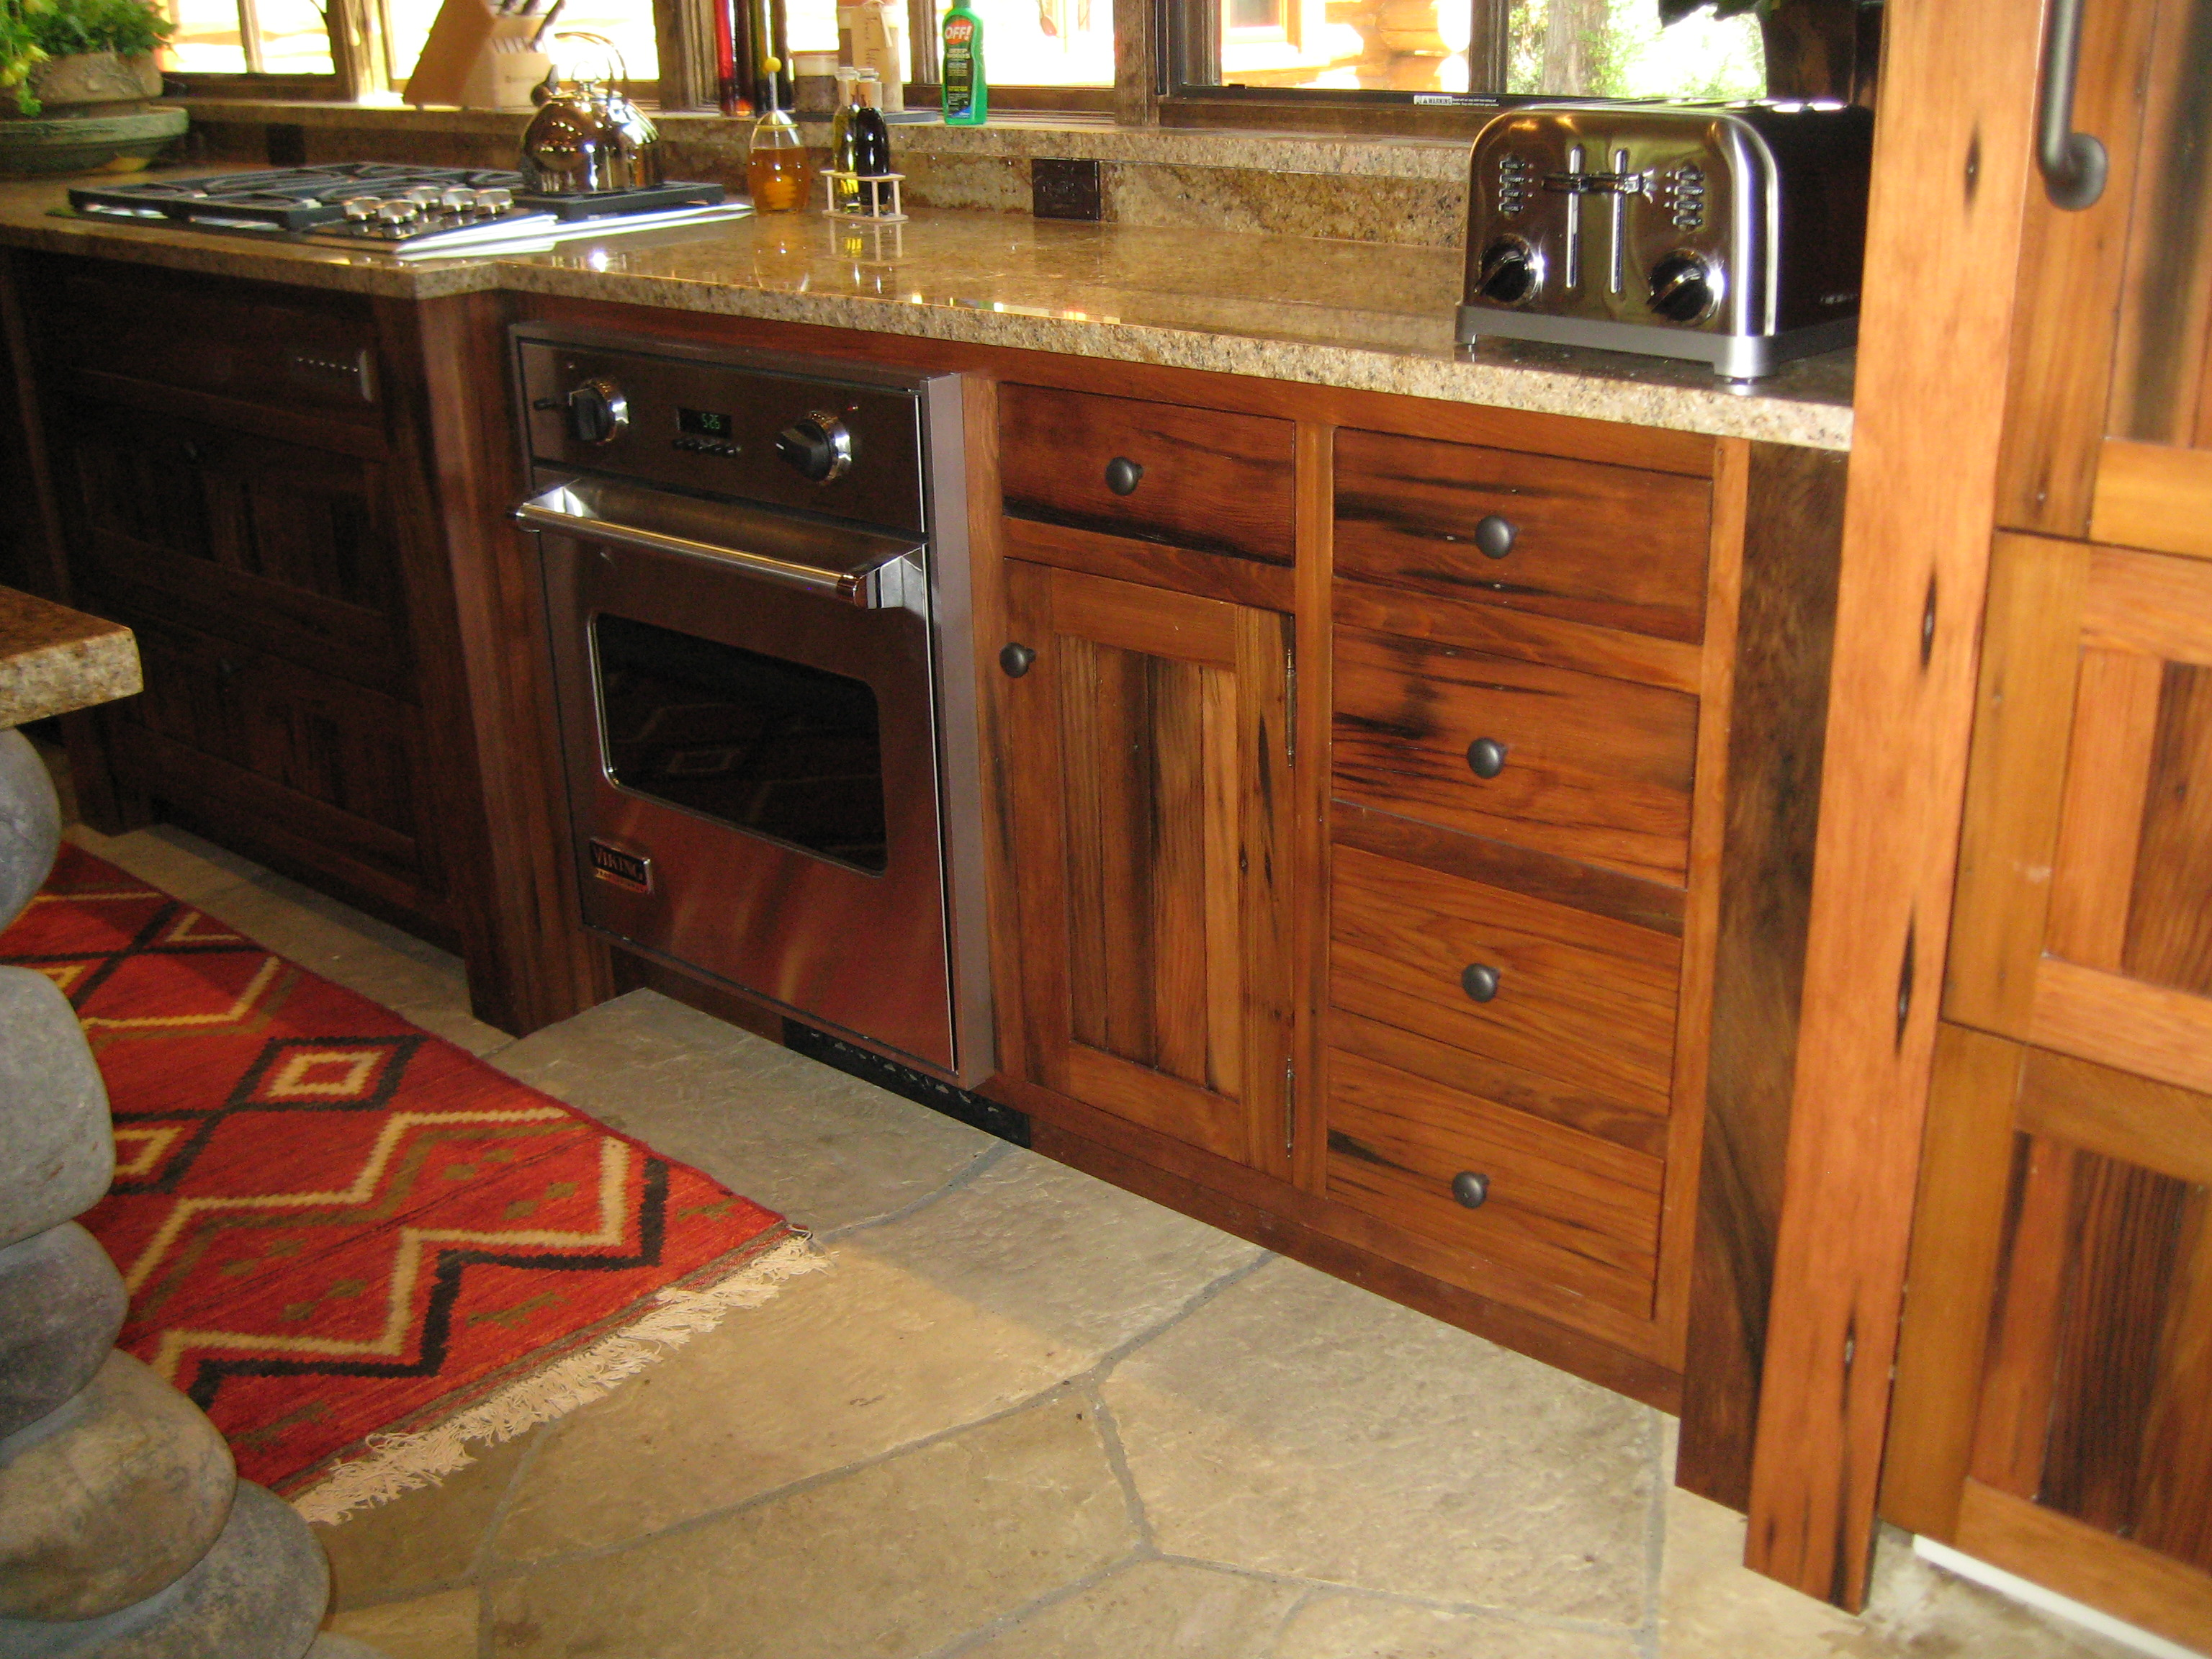 Kitchen 2010, Kitchen Cabinets